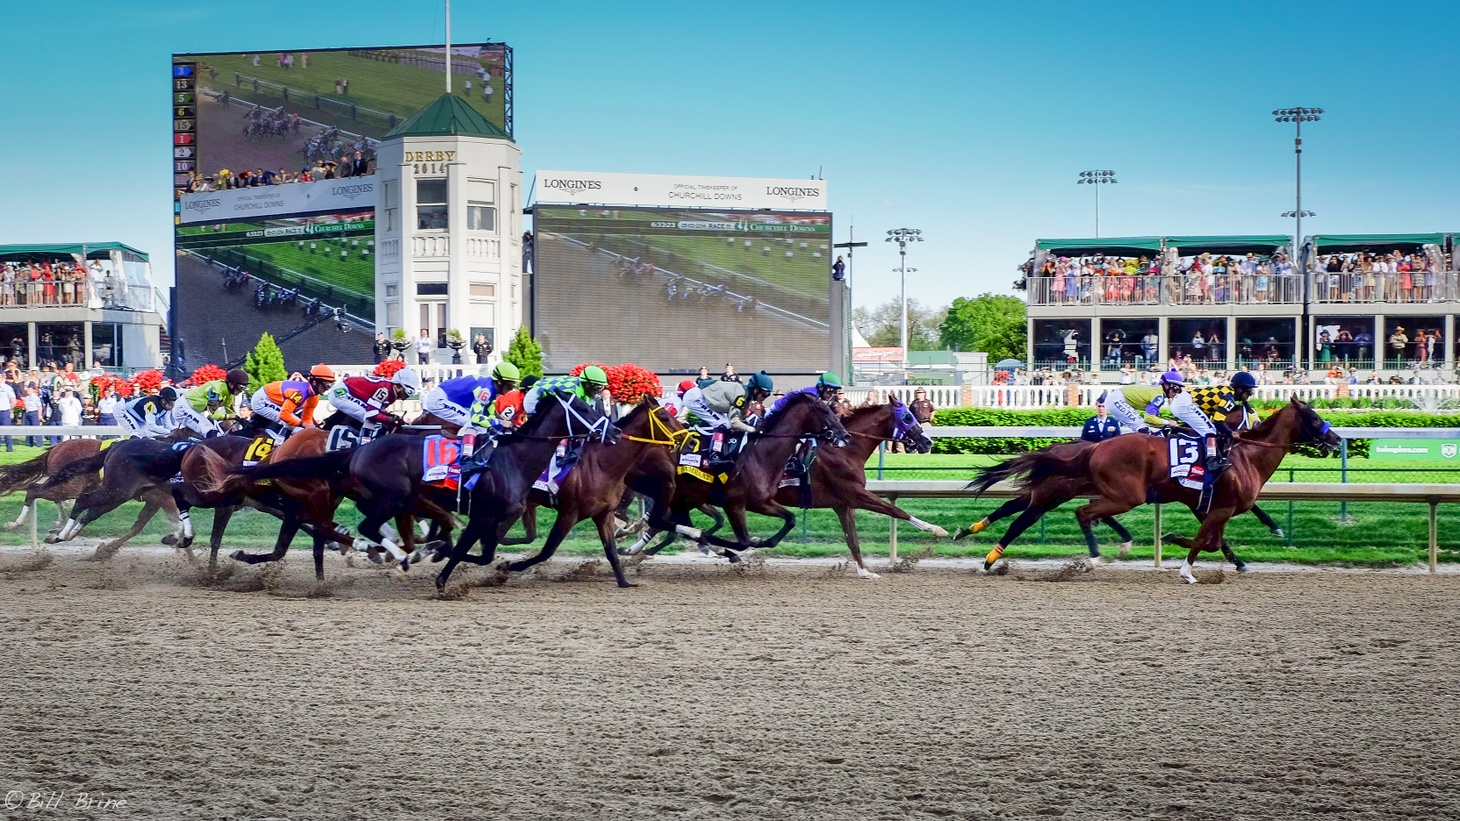 The Kentucky Derby in 2014. The Derby usually happens in spring, but this year, it was pushed to September due to the COVID-19 pandemic. Greg Harbut was the only African American to race a horse at this year's Derby.